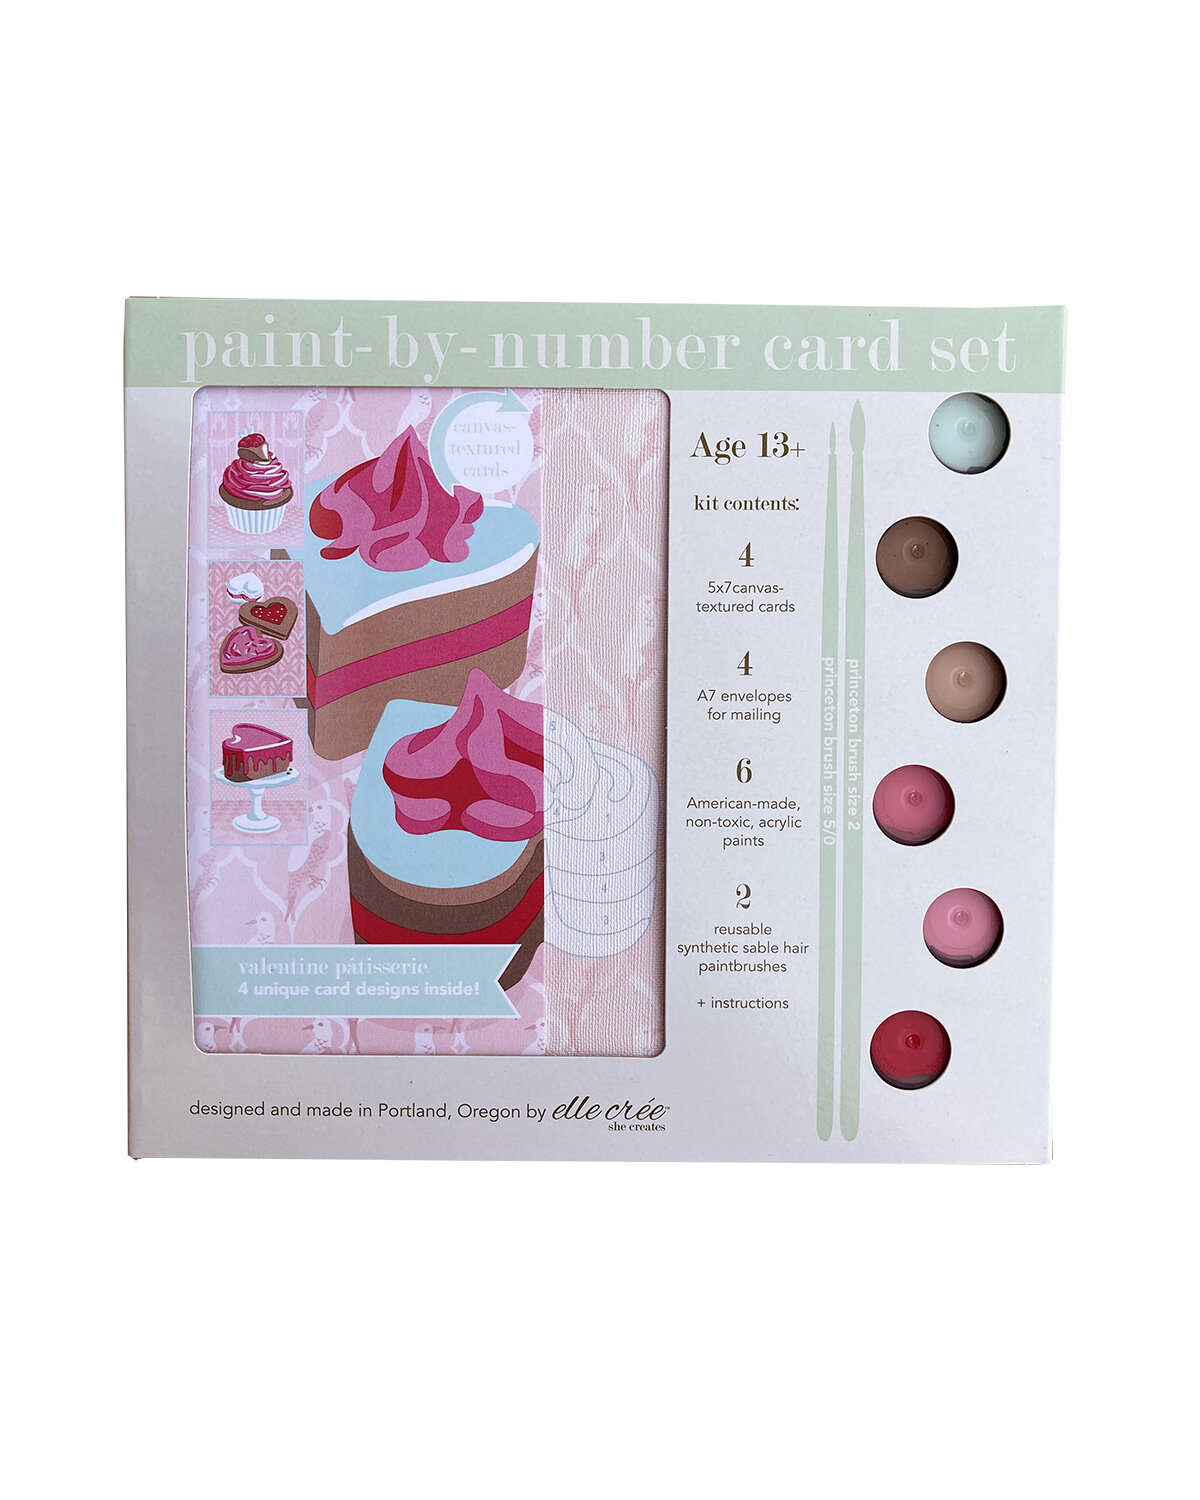 Valentine Patisserie Paint-by-number Card Set